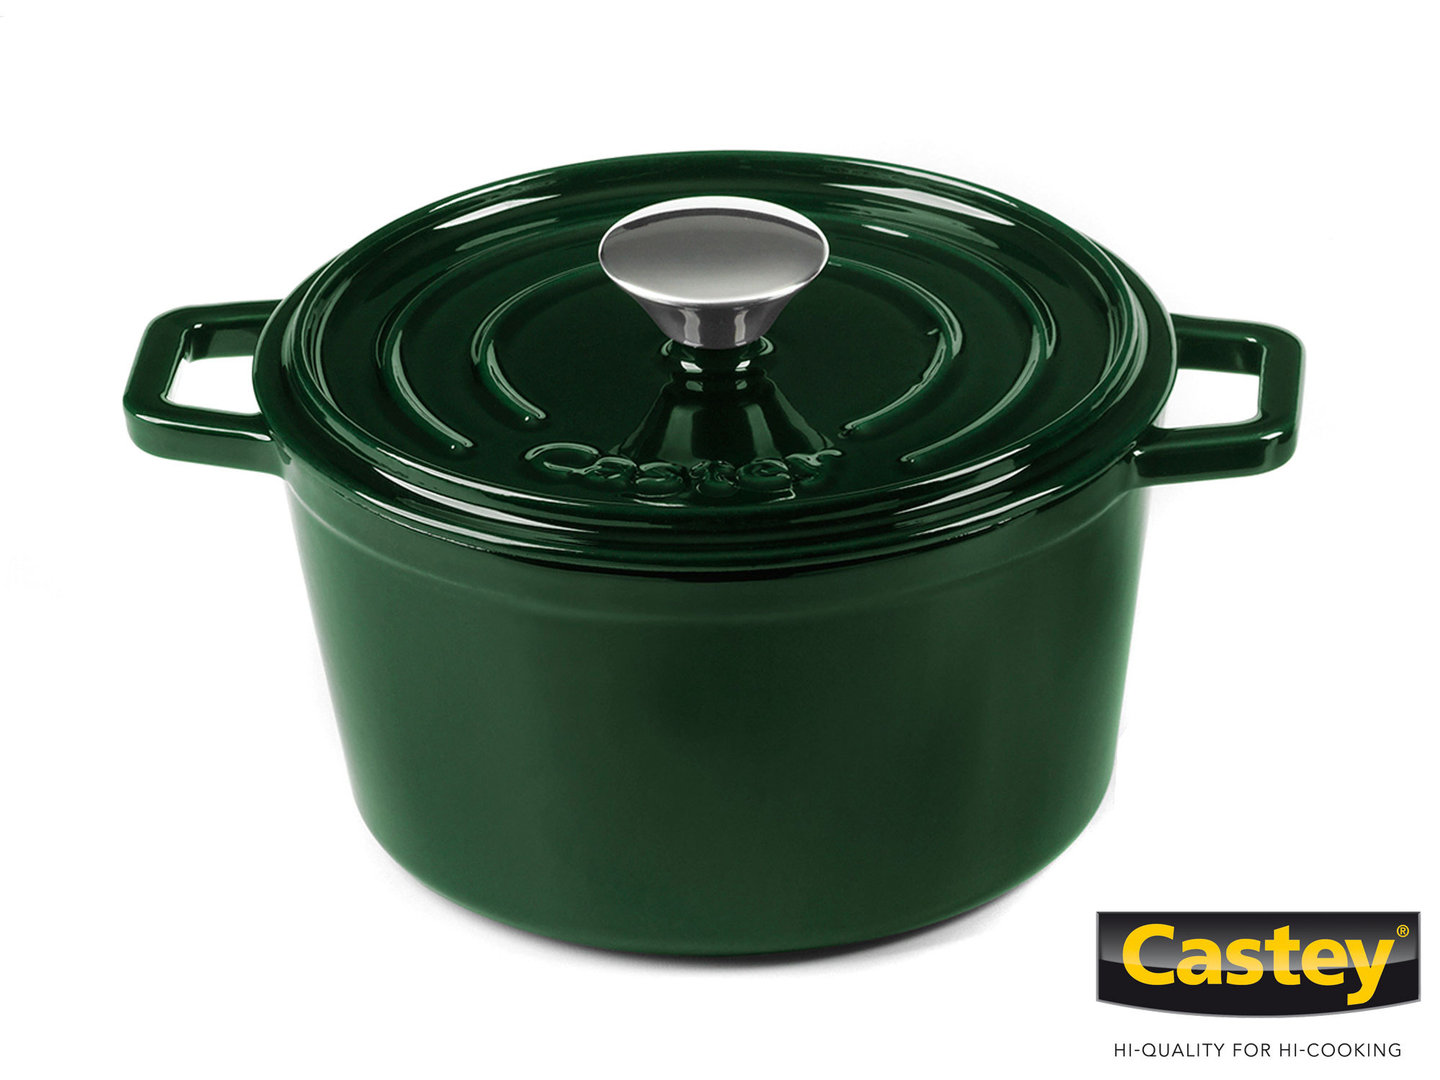 Topf Gusseisen Castey Gusseisen Topf Cocotte 18 Cm Jade Emaille